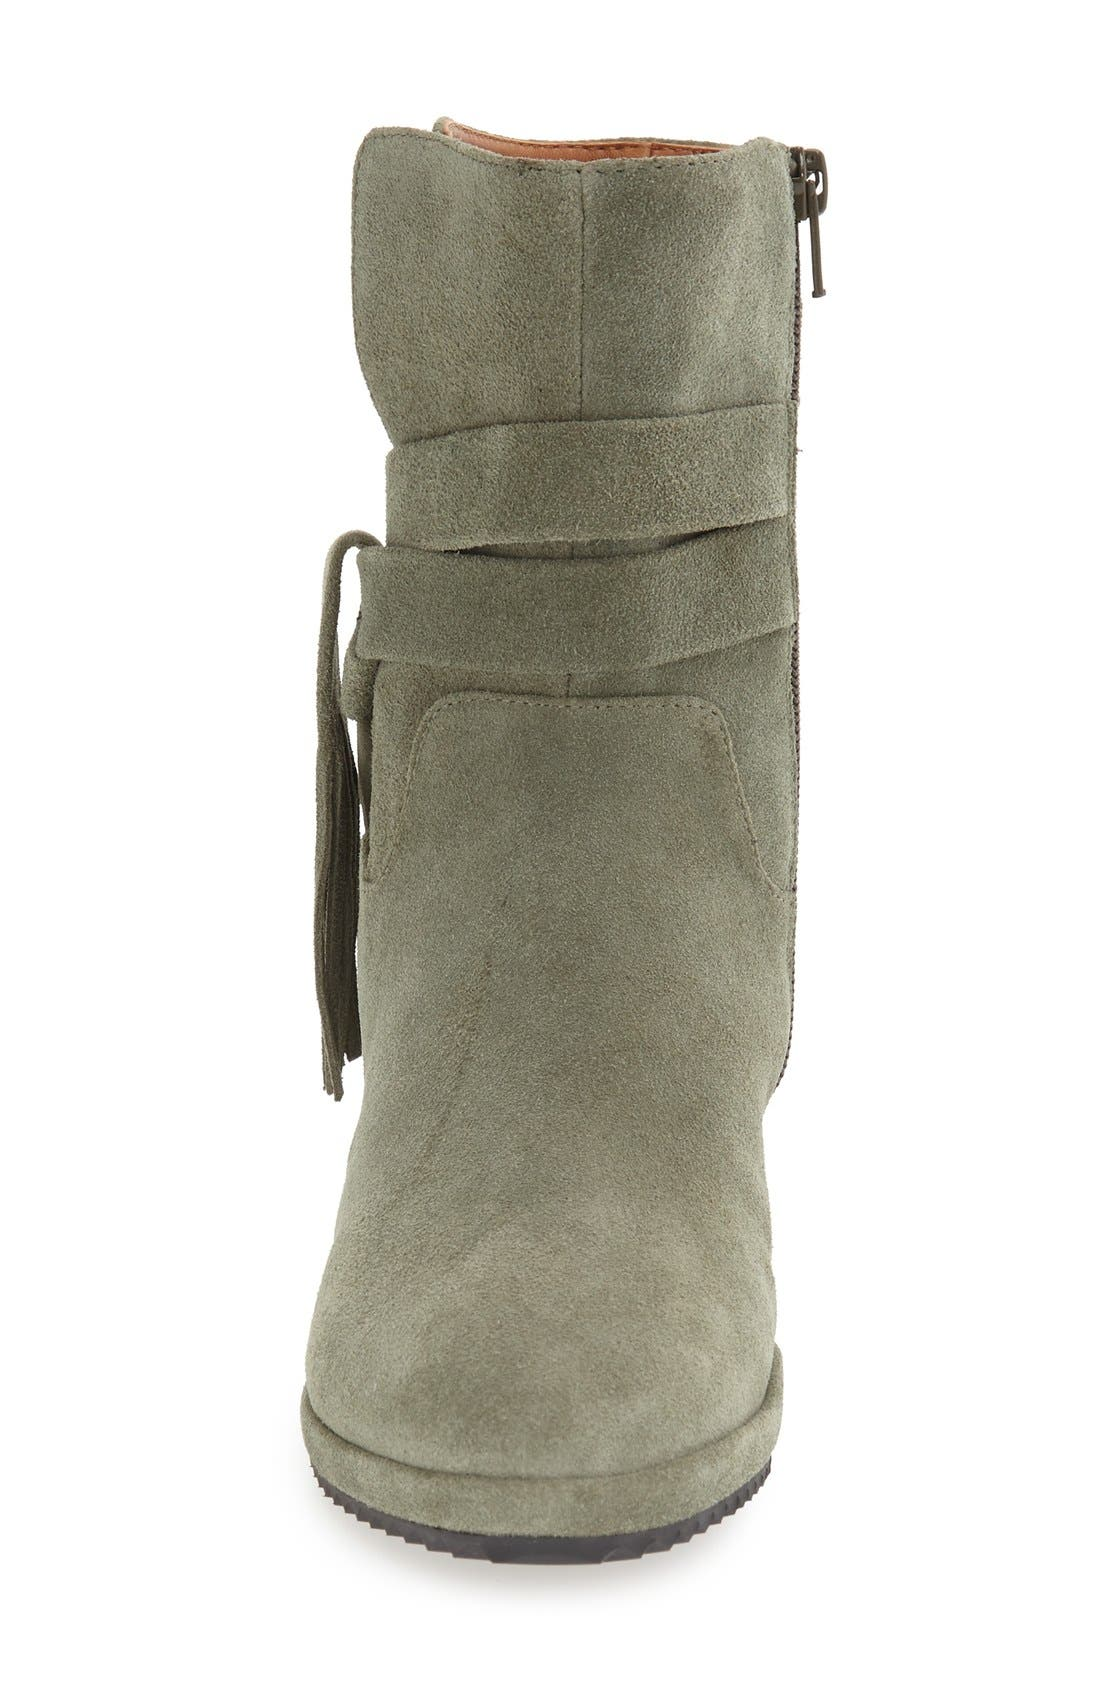 'Bernyce' Boot,                             Alternate thumbnail 3, color,                             Olive Suede Leather